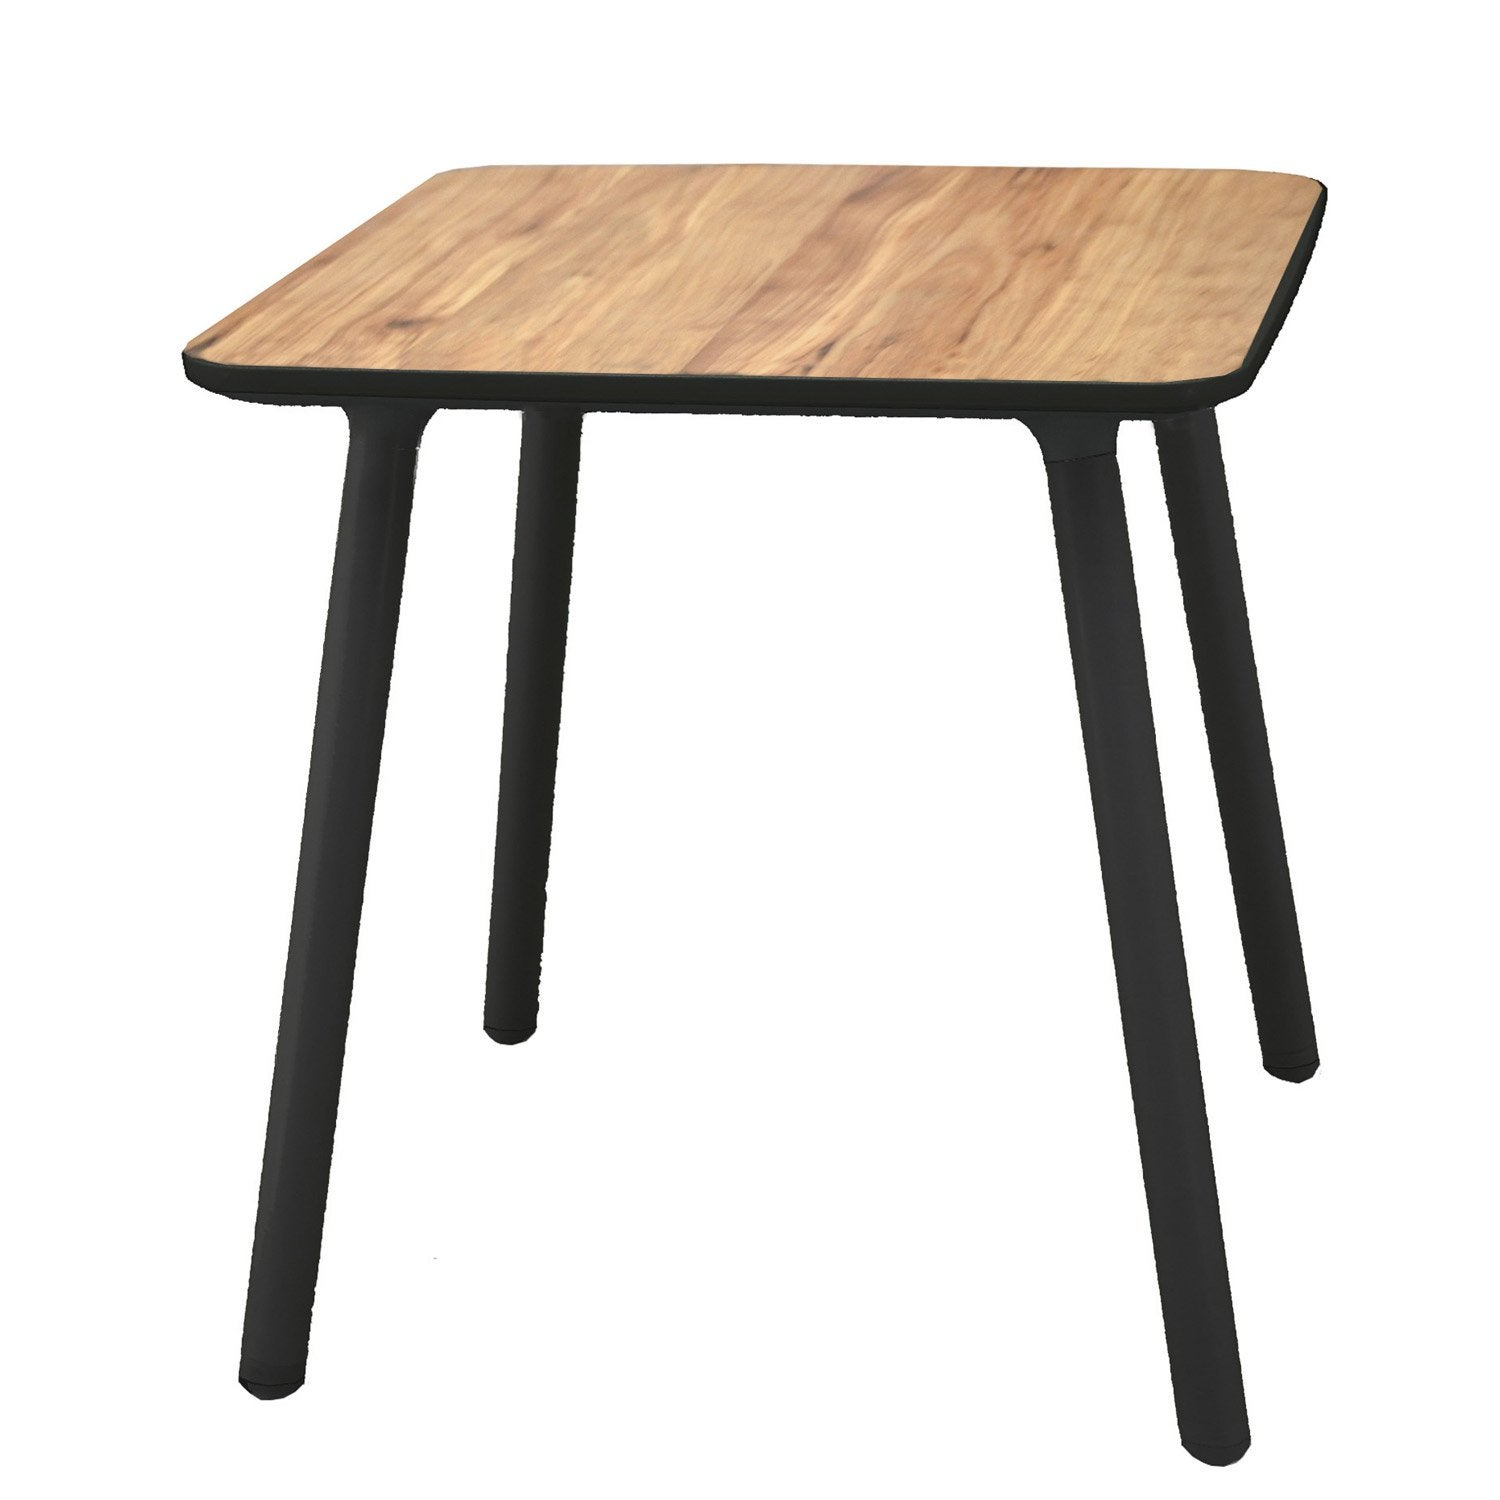 Table de jardin carr e julien leroy merlin - Leroy merlin table jardin ...